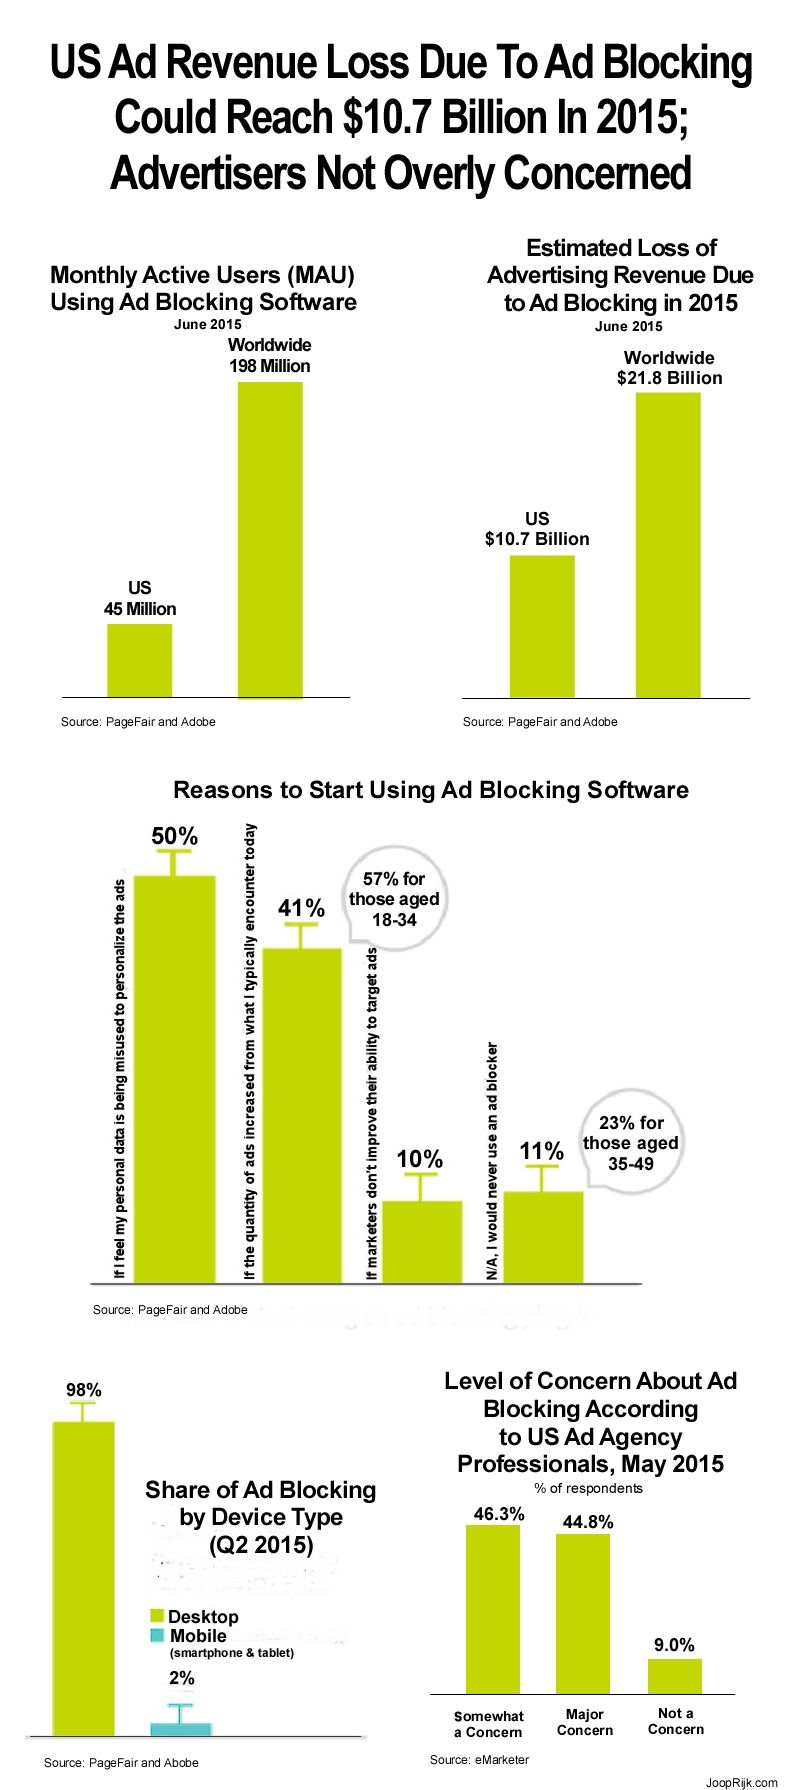 Ad blocking software platform PageFair conducted a recent survey and found that 16% of the US web users are using ad blocking software. The loss of advertising revenue to US publishers, according to PageFair, could be around $10.7 billion in 2015 and grow to $20.3 billion by 2016, but more than half of advertisers are not overly concerned. #adblocking #software